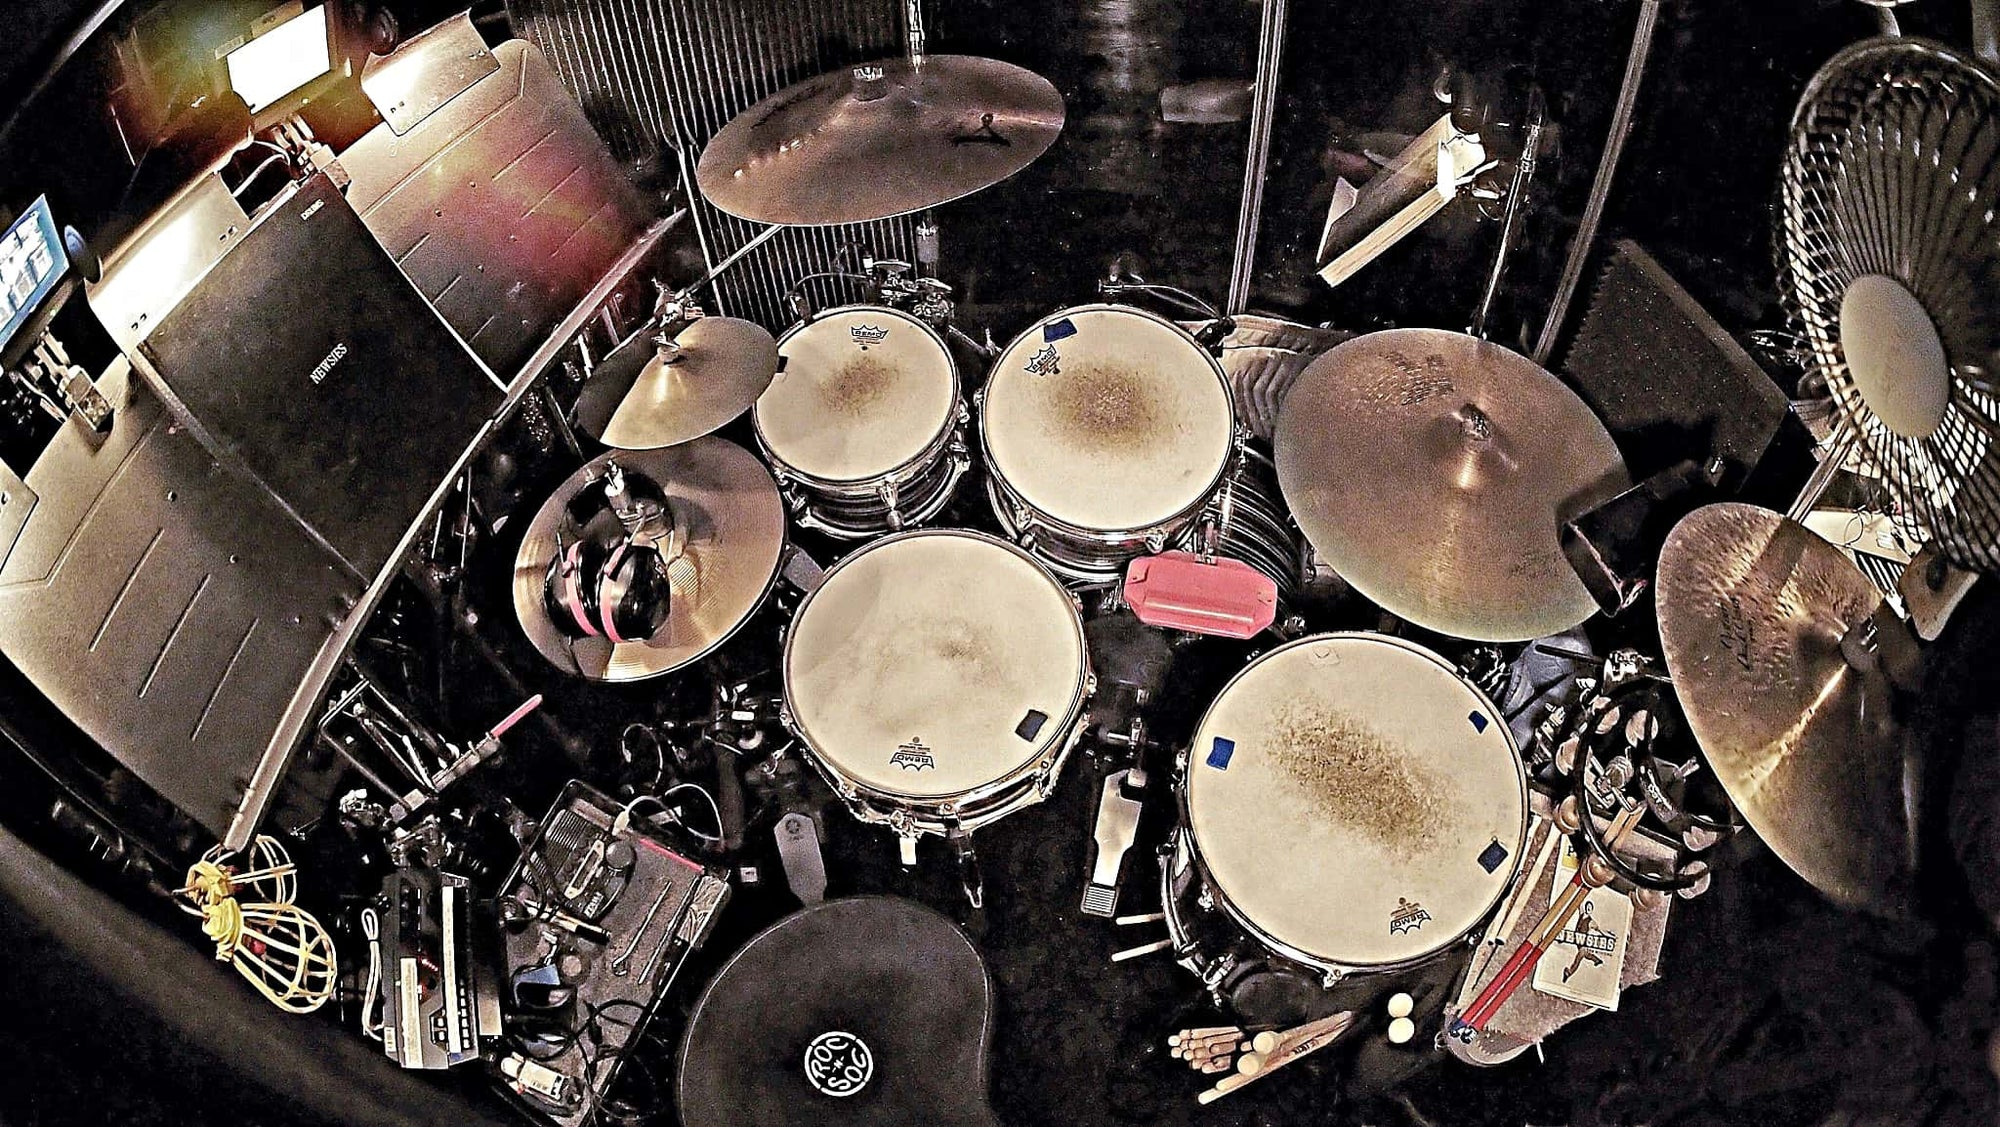 Paul Davis' setup for the Broadway production of Newsies at the Nederlander Theatre.